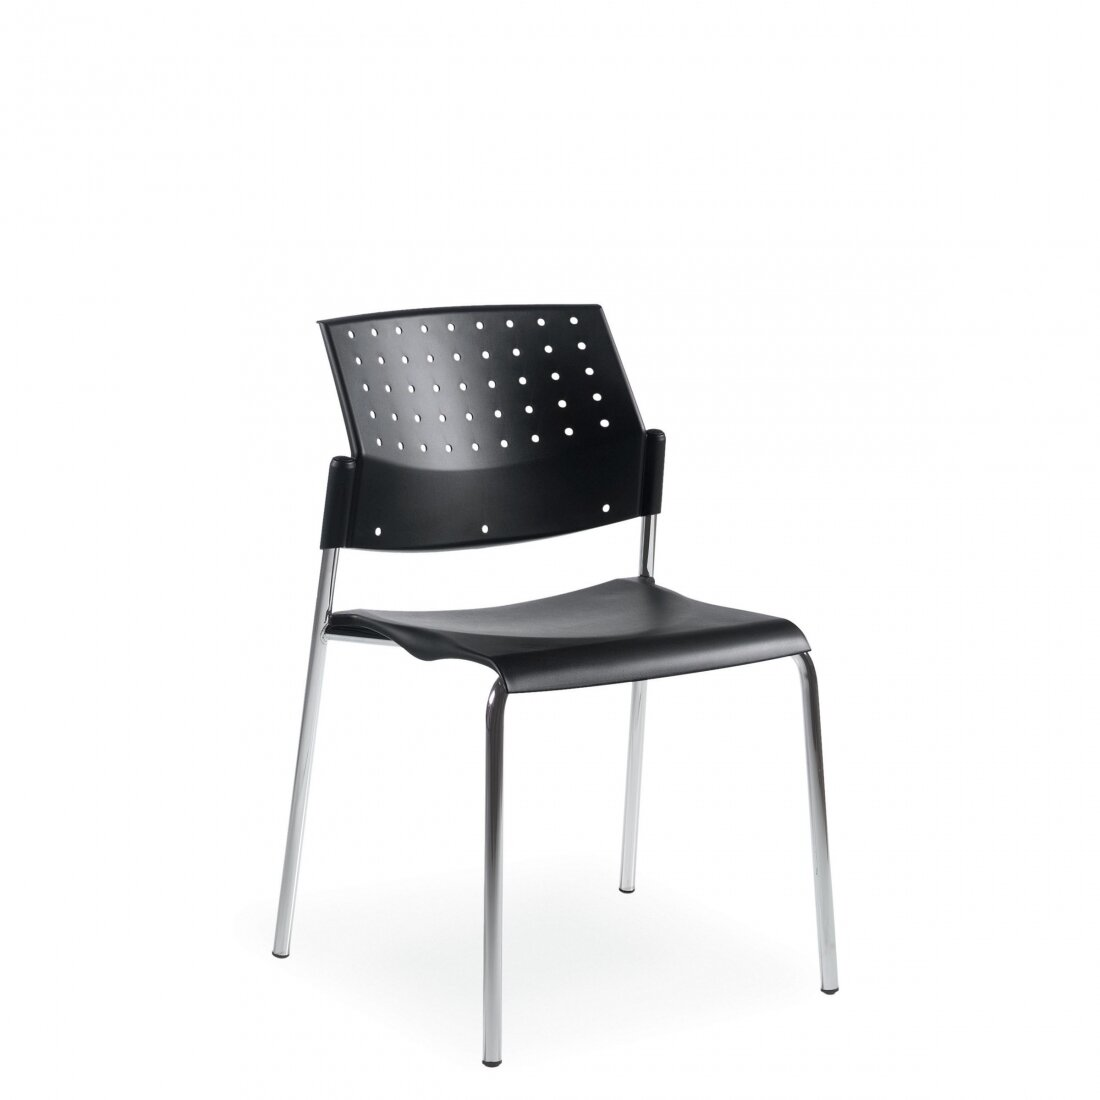 Global Sonic Chair (2 Pack)